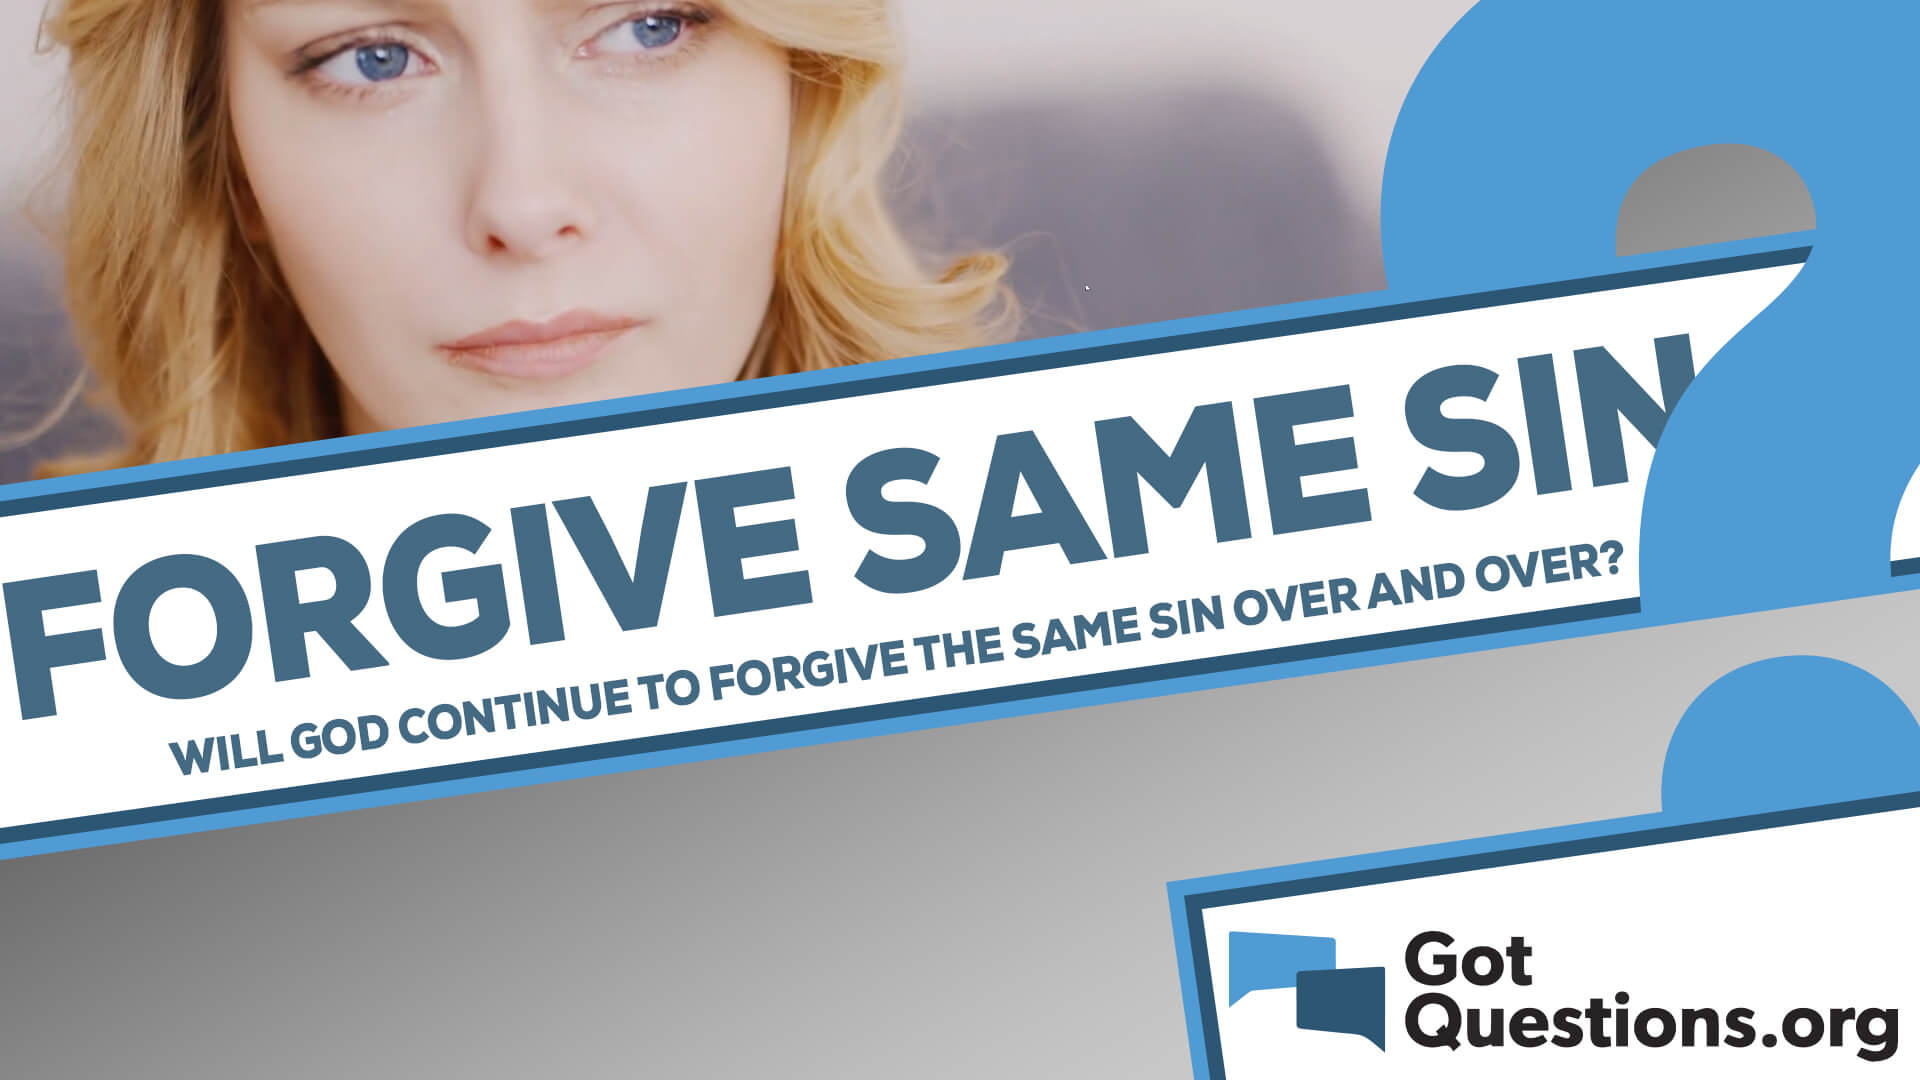 will god continue to forgive you if you commit the same sin over and